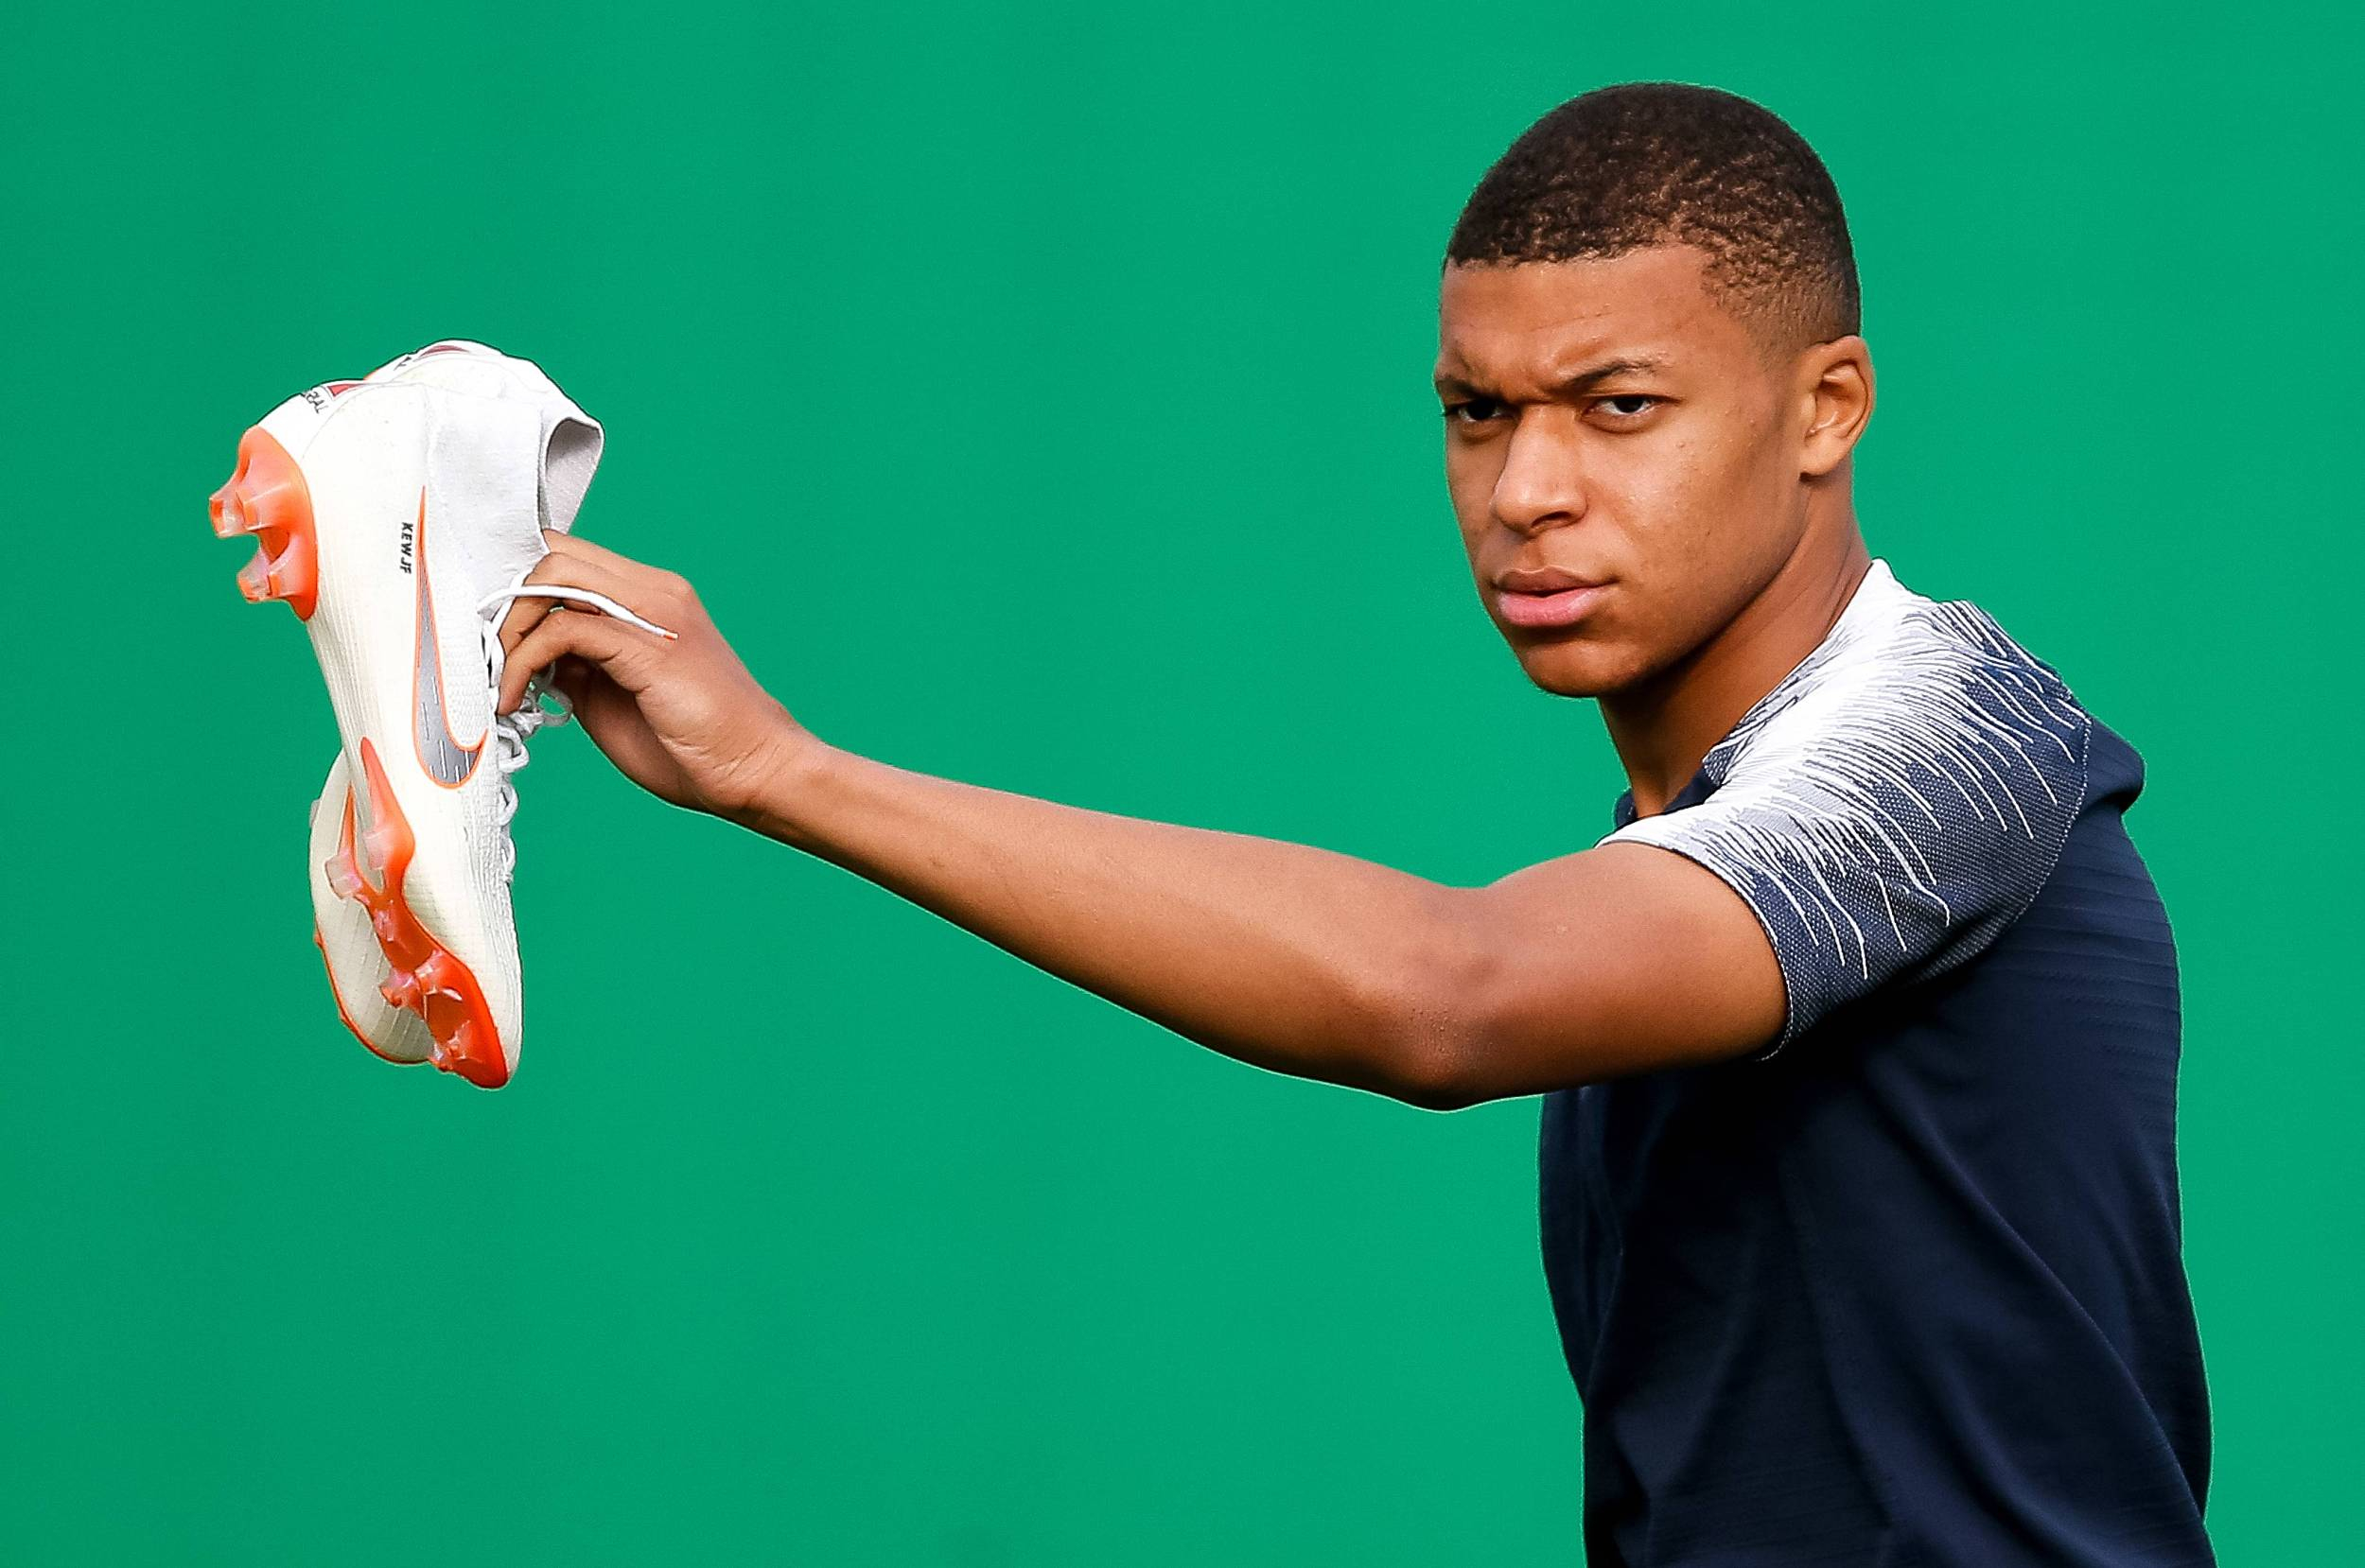 Nike vs. Adidas: Who is the real winner of the World Cup? - CGTN